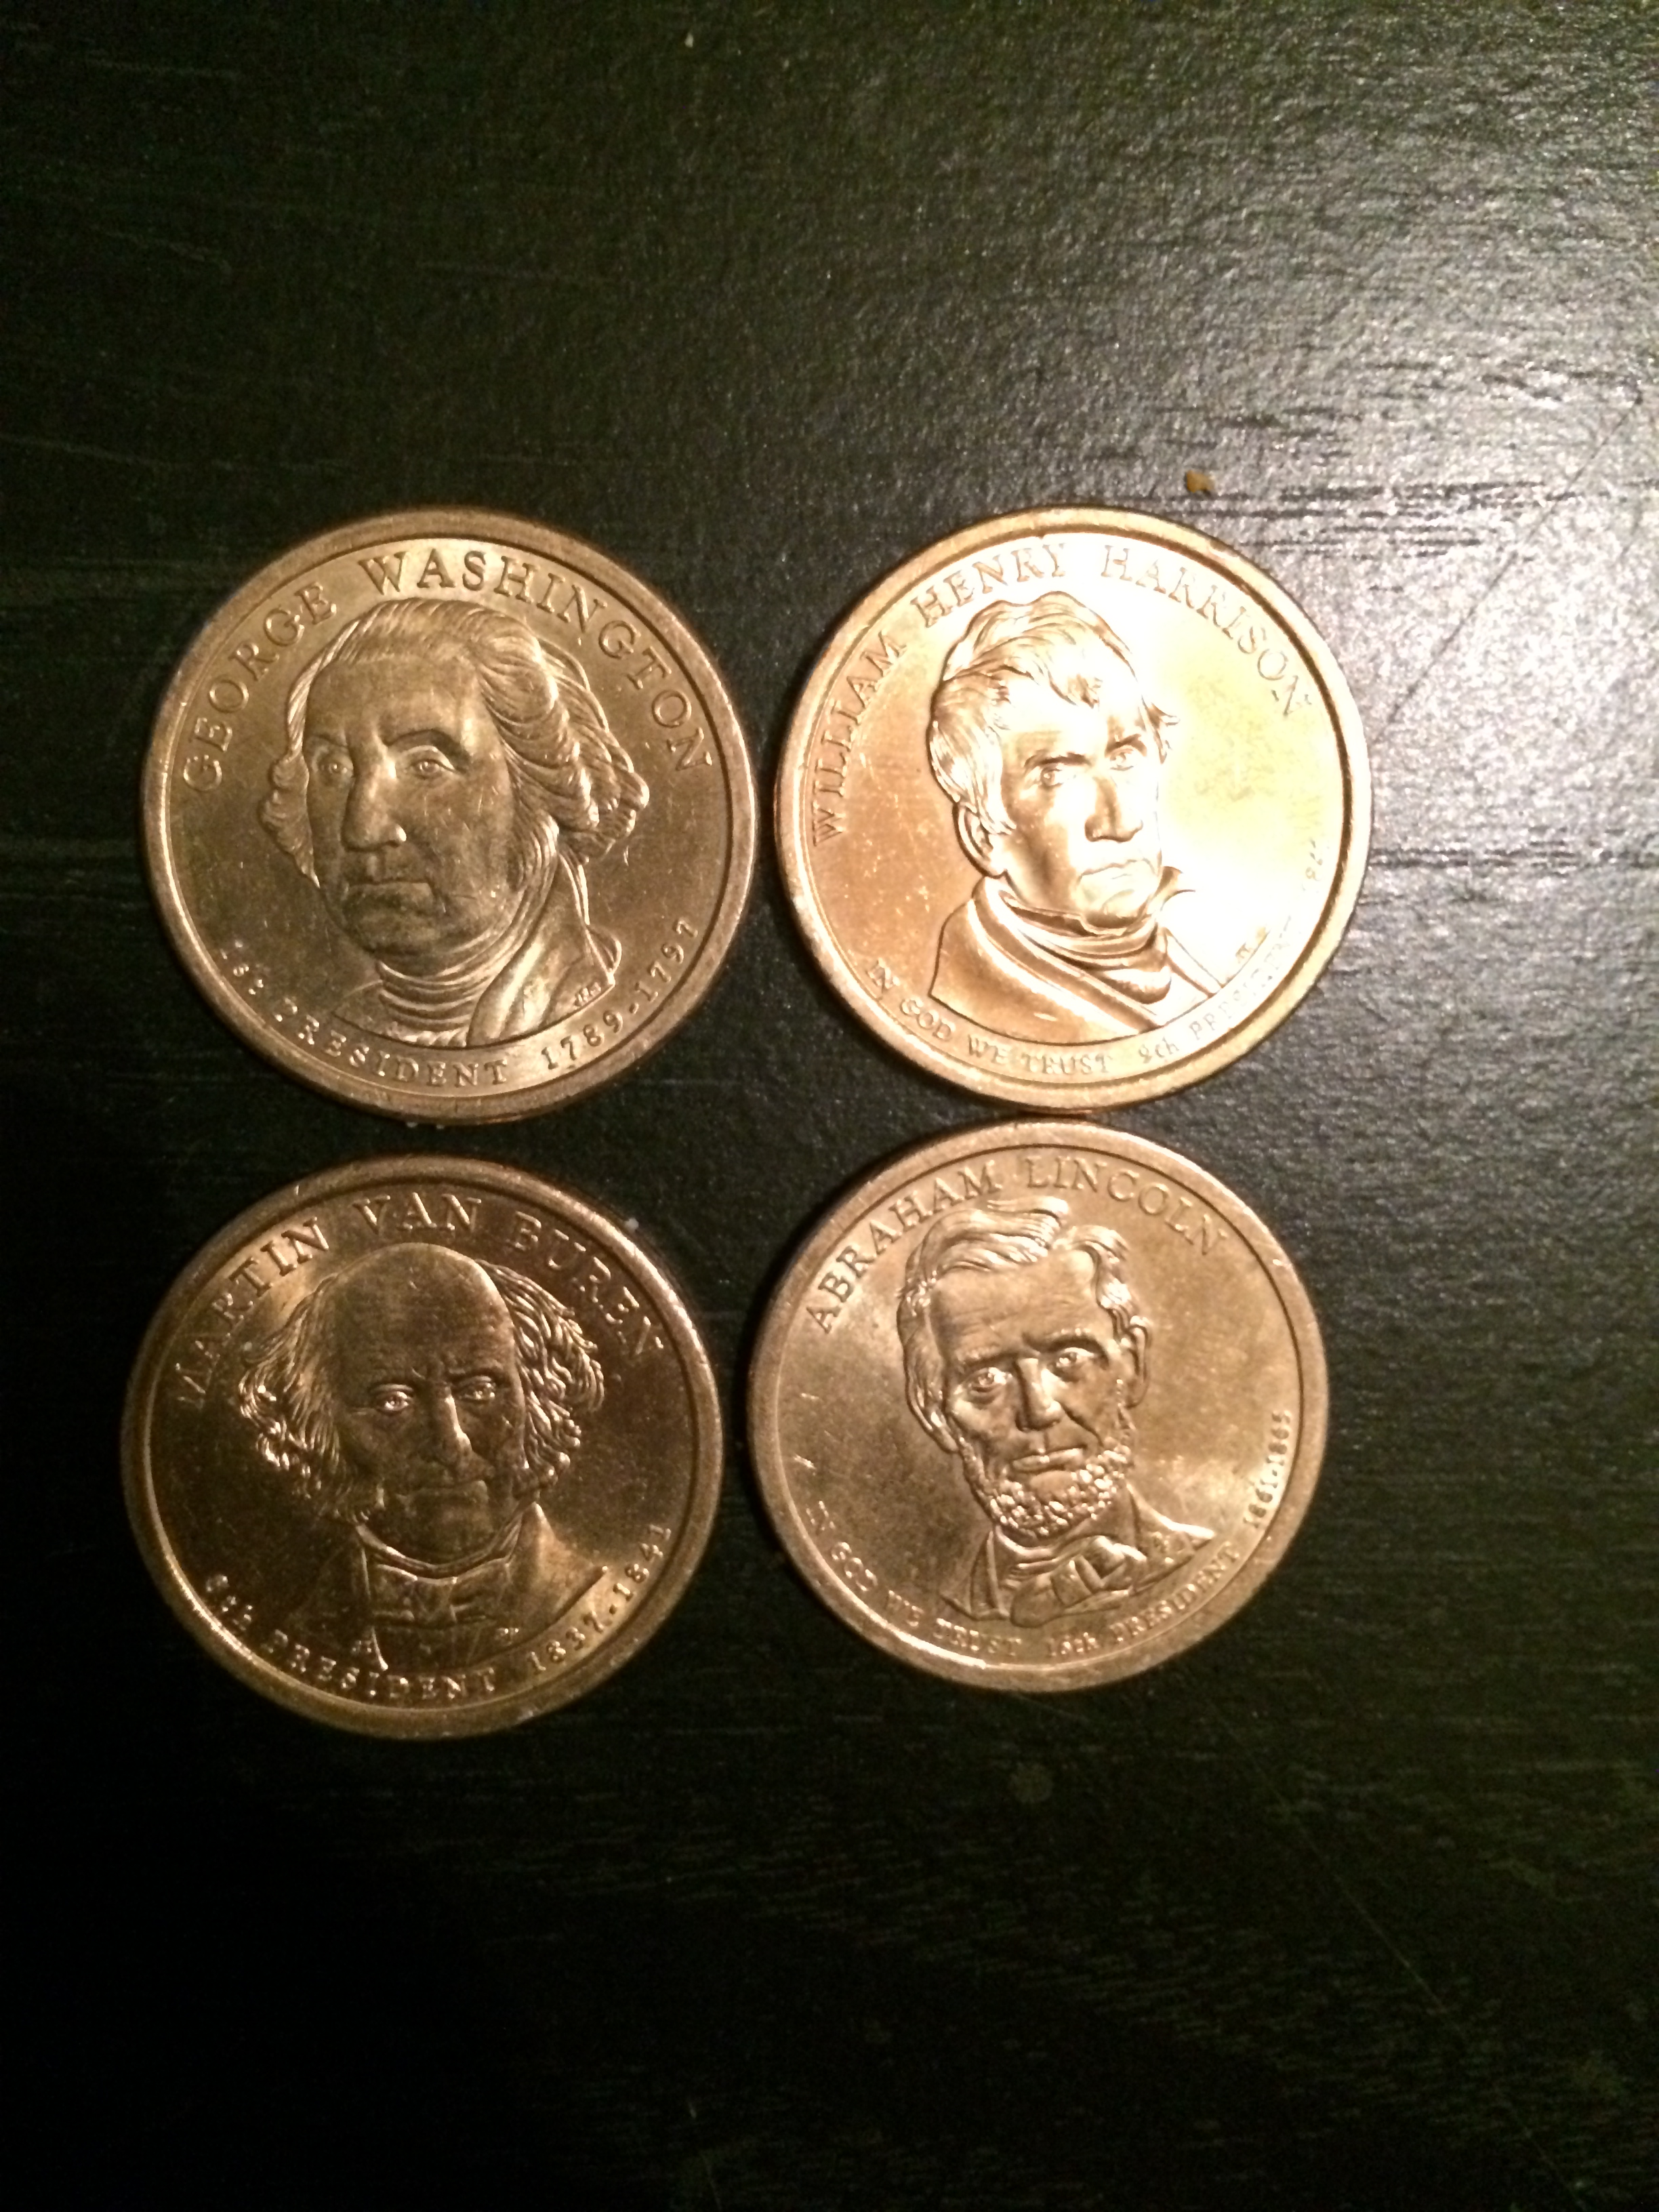 An up close look at the four Presidential dollar coins I received.